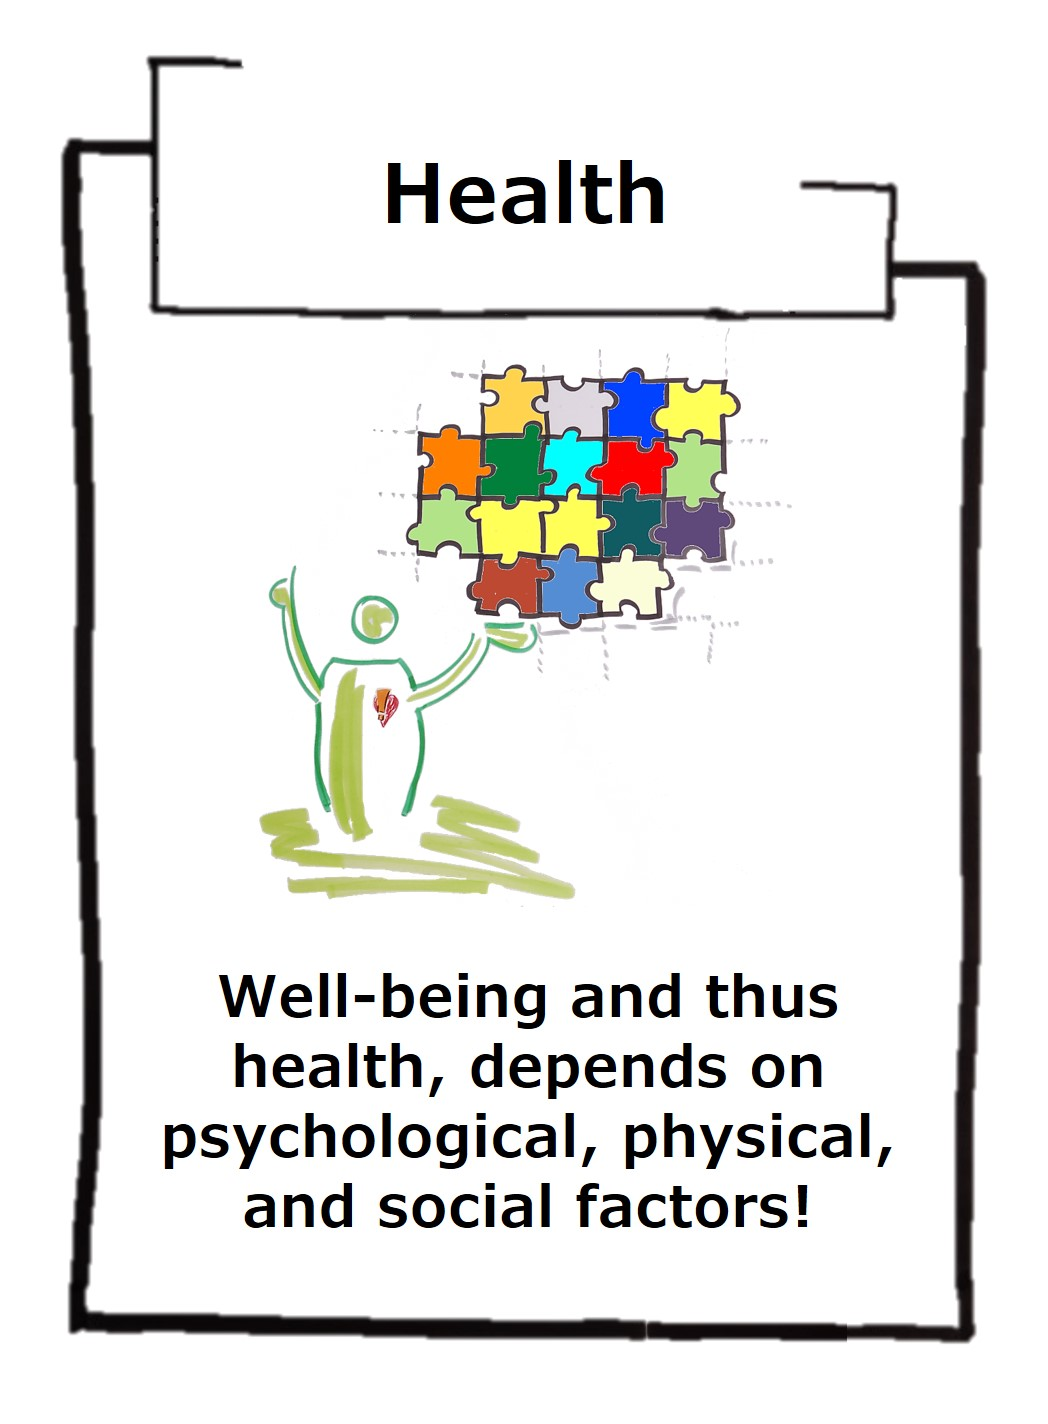 Health is psychological and physical well-being - this requires knowledge of yourself!